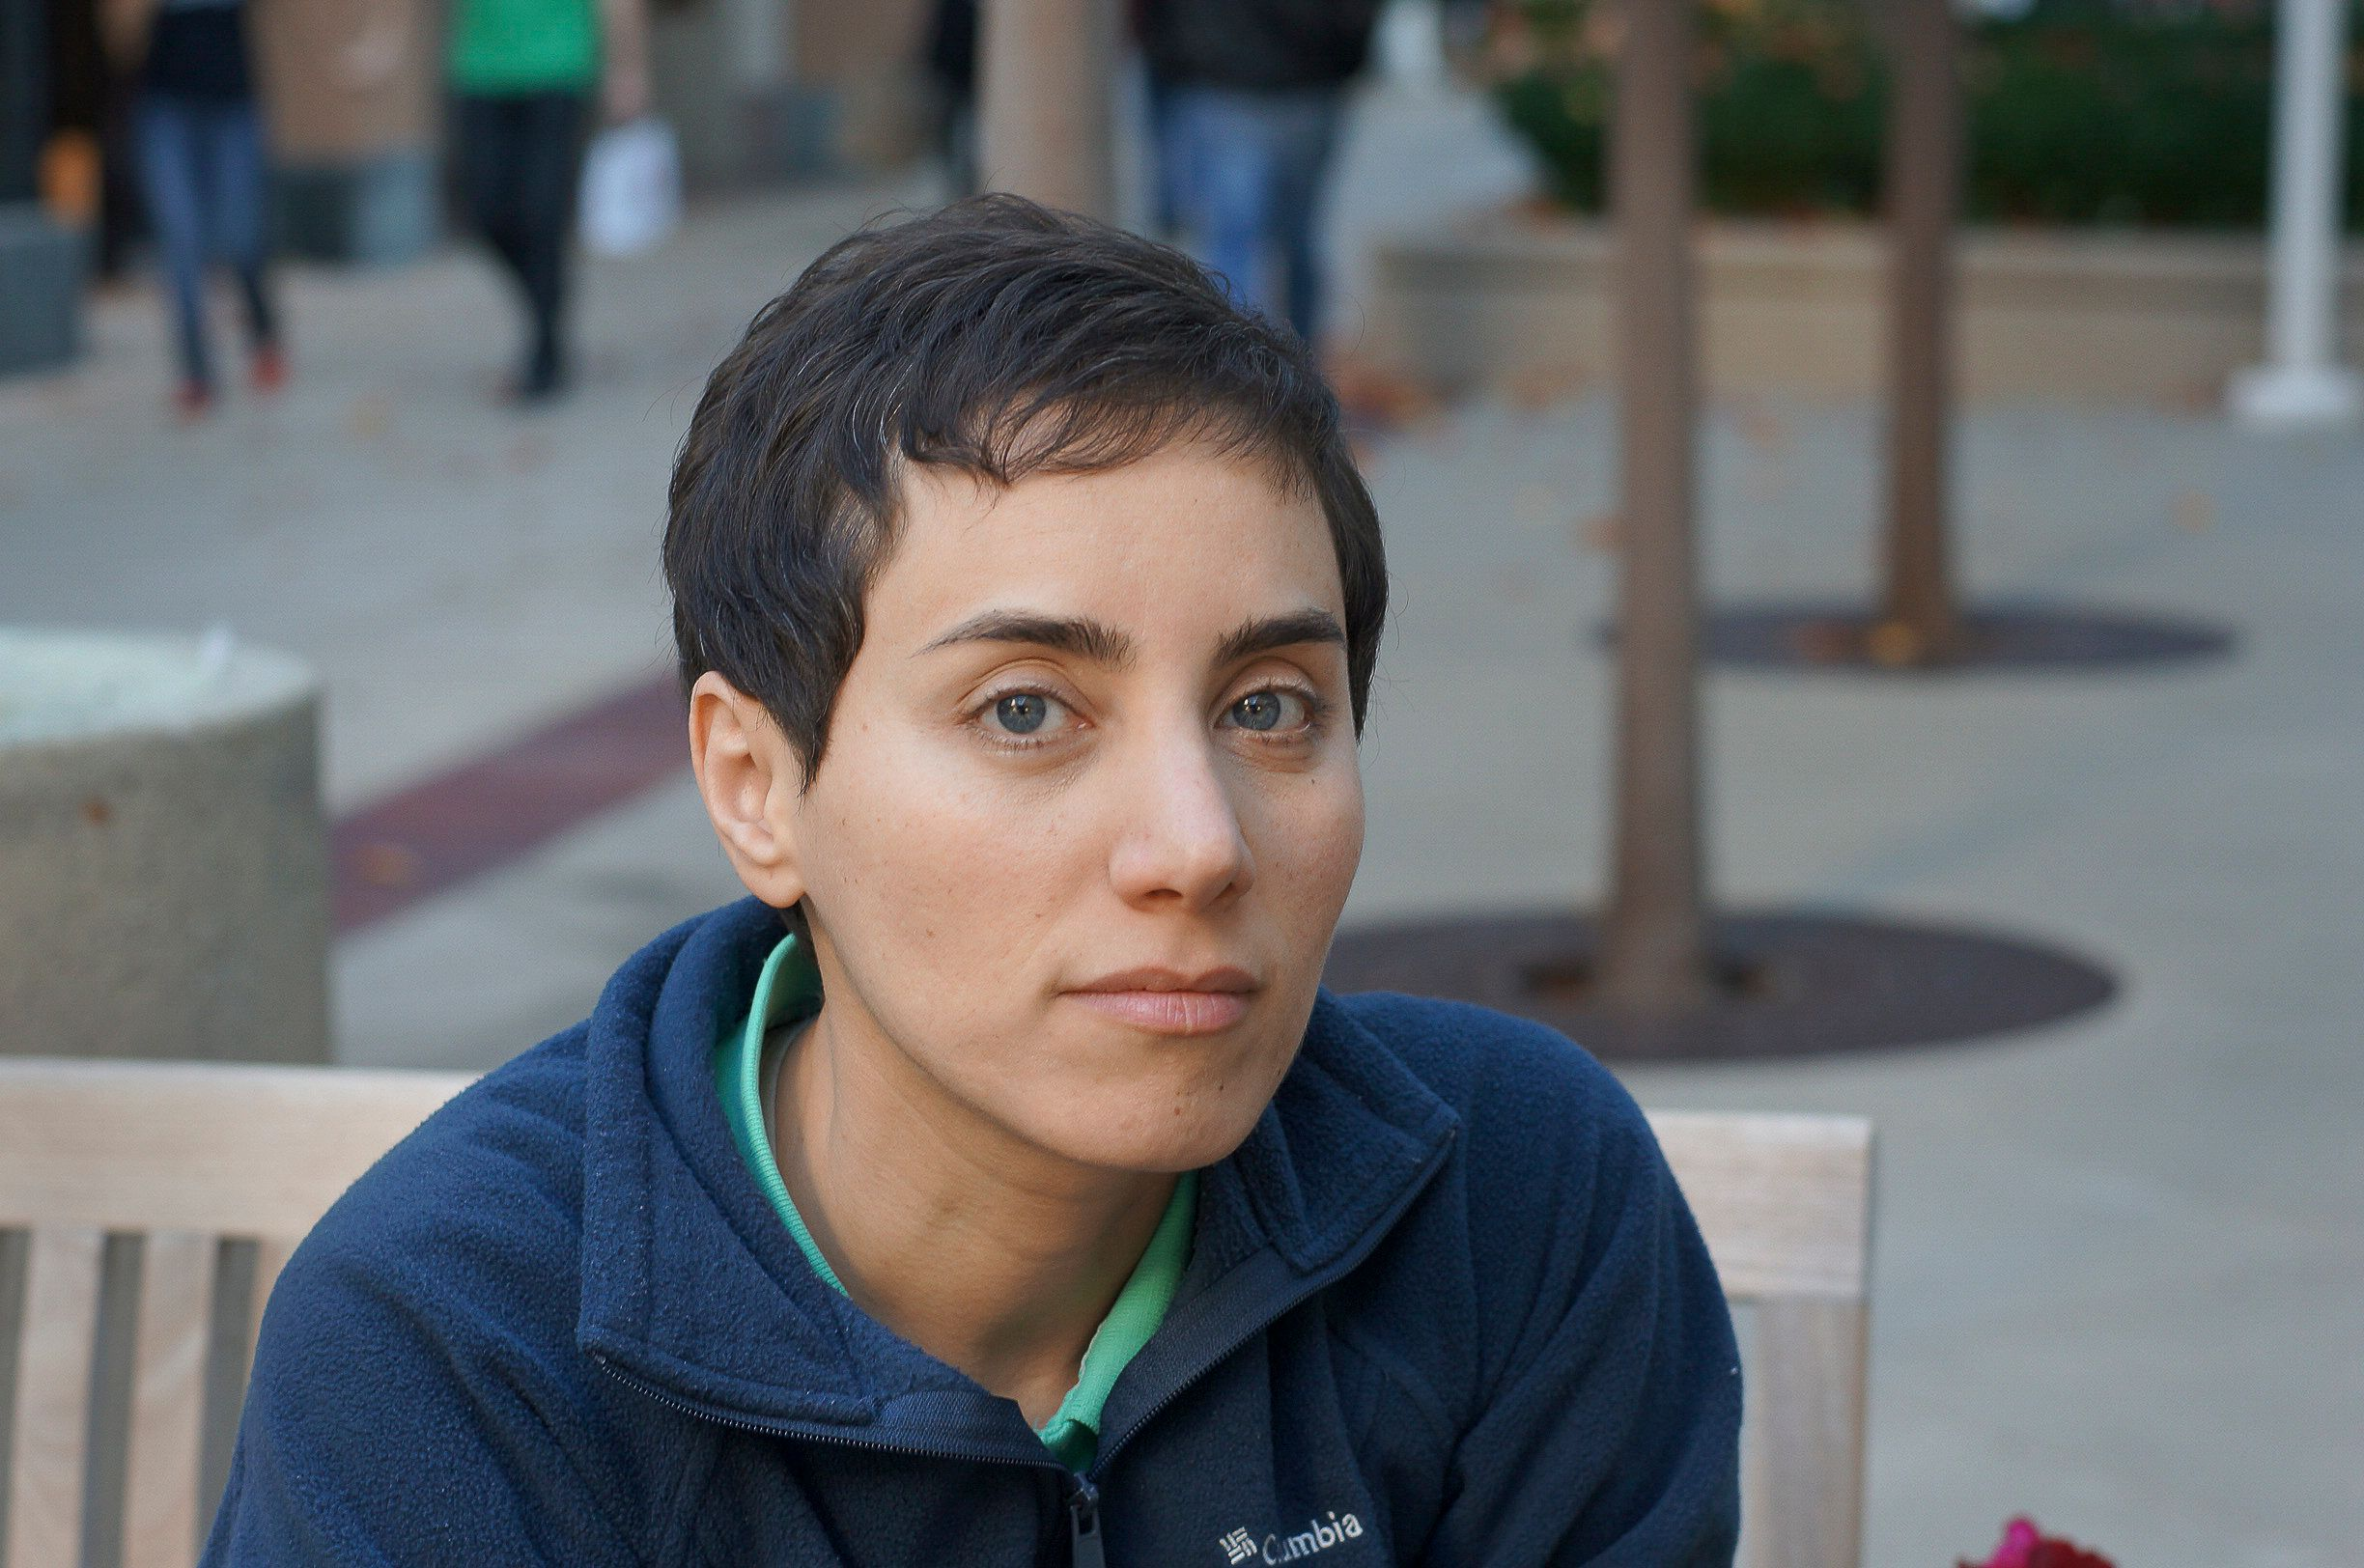 Professor Maryam Mirzakhani is the recipient of the 2014 Fields Medal, the top honor in mathematics. She is the first woman i